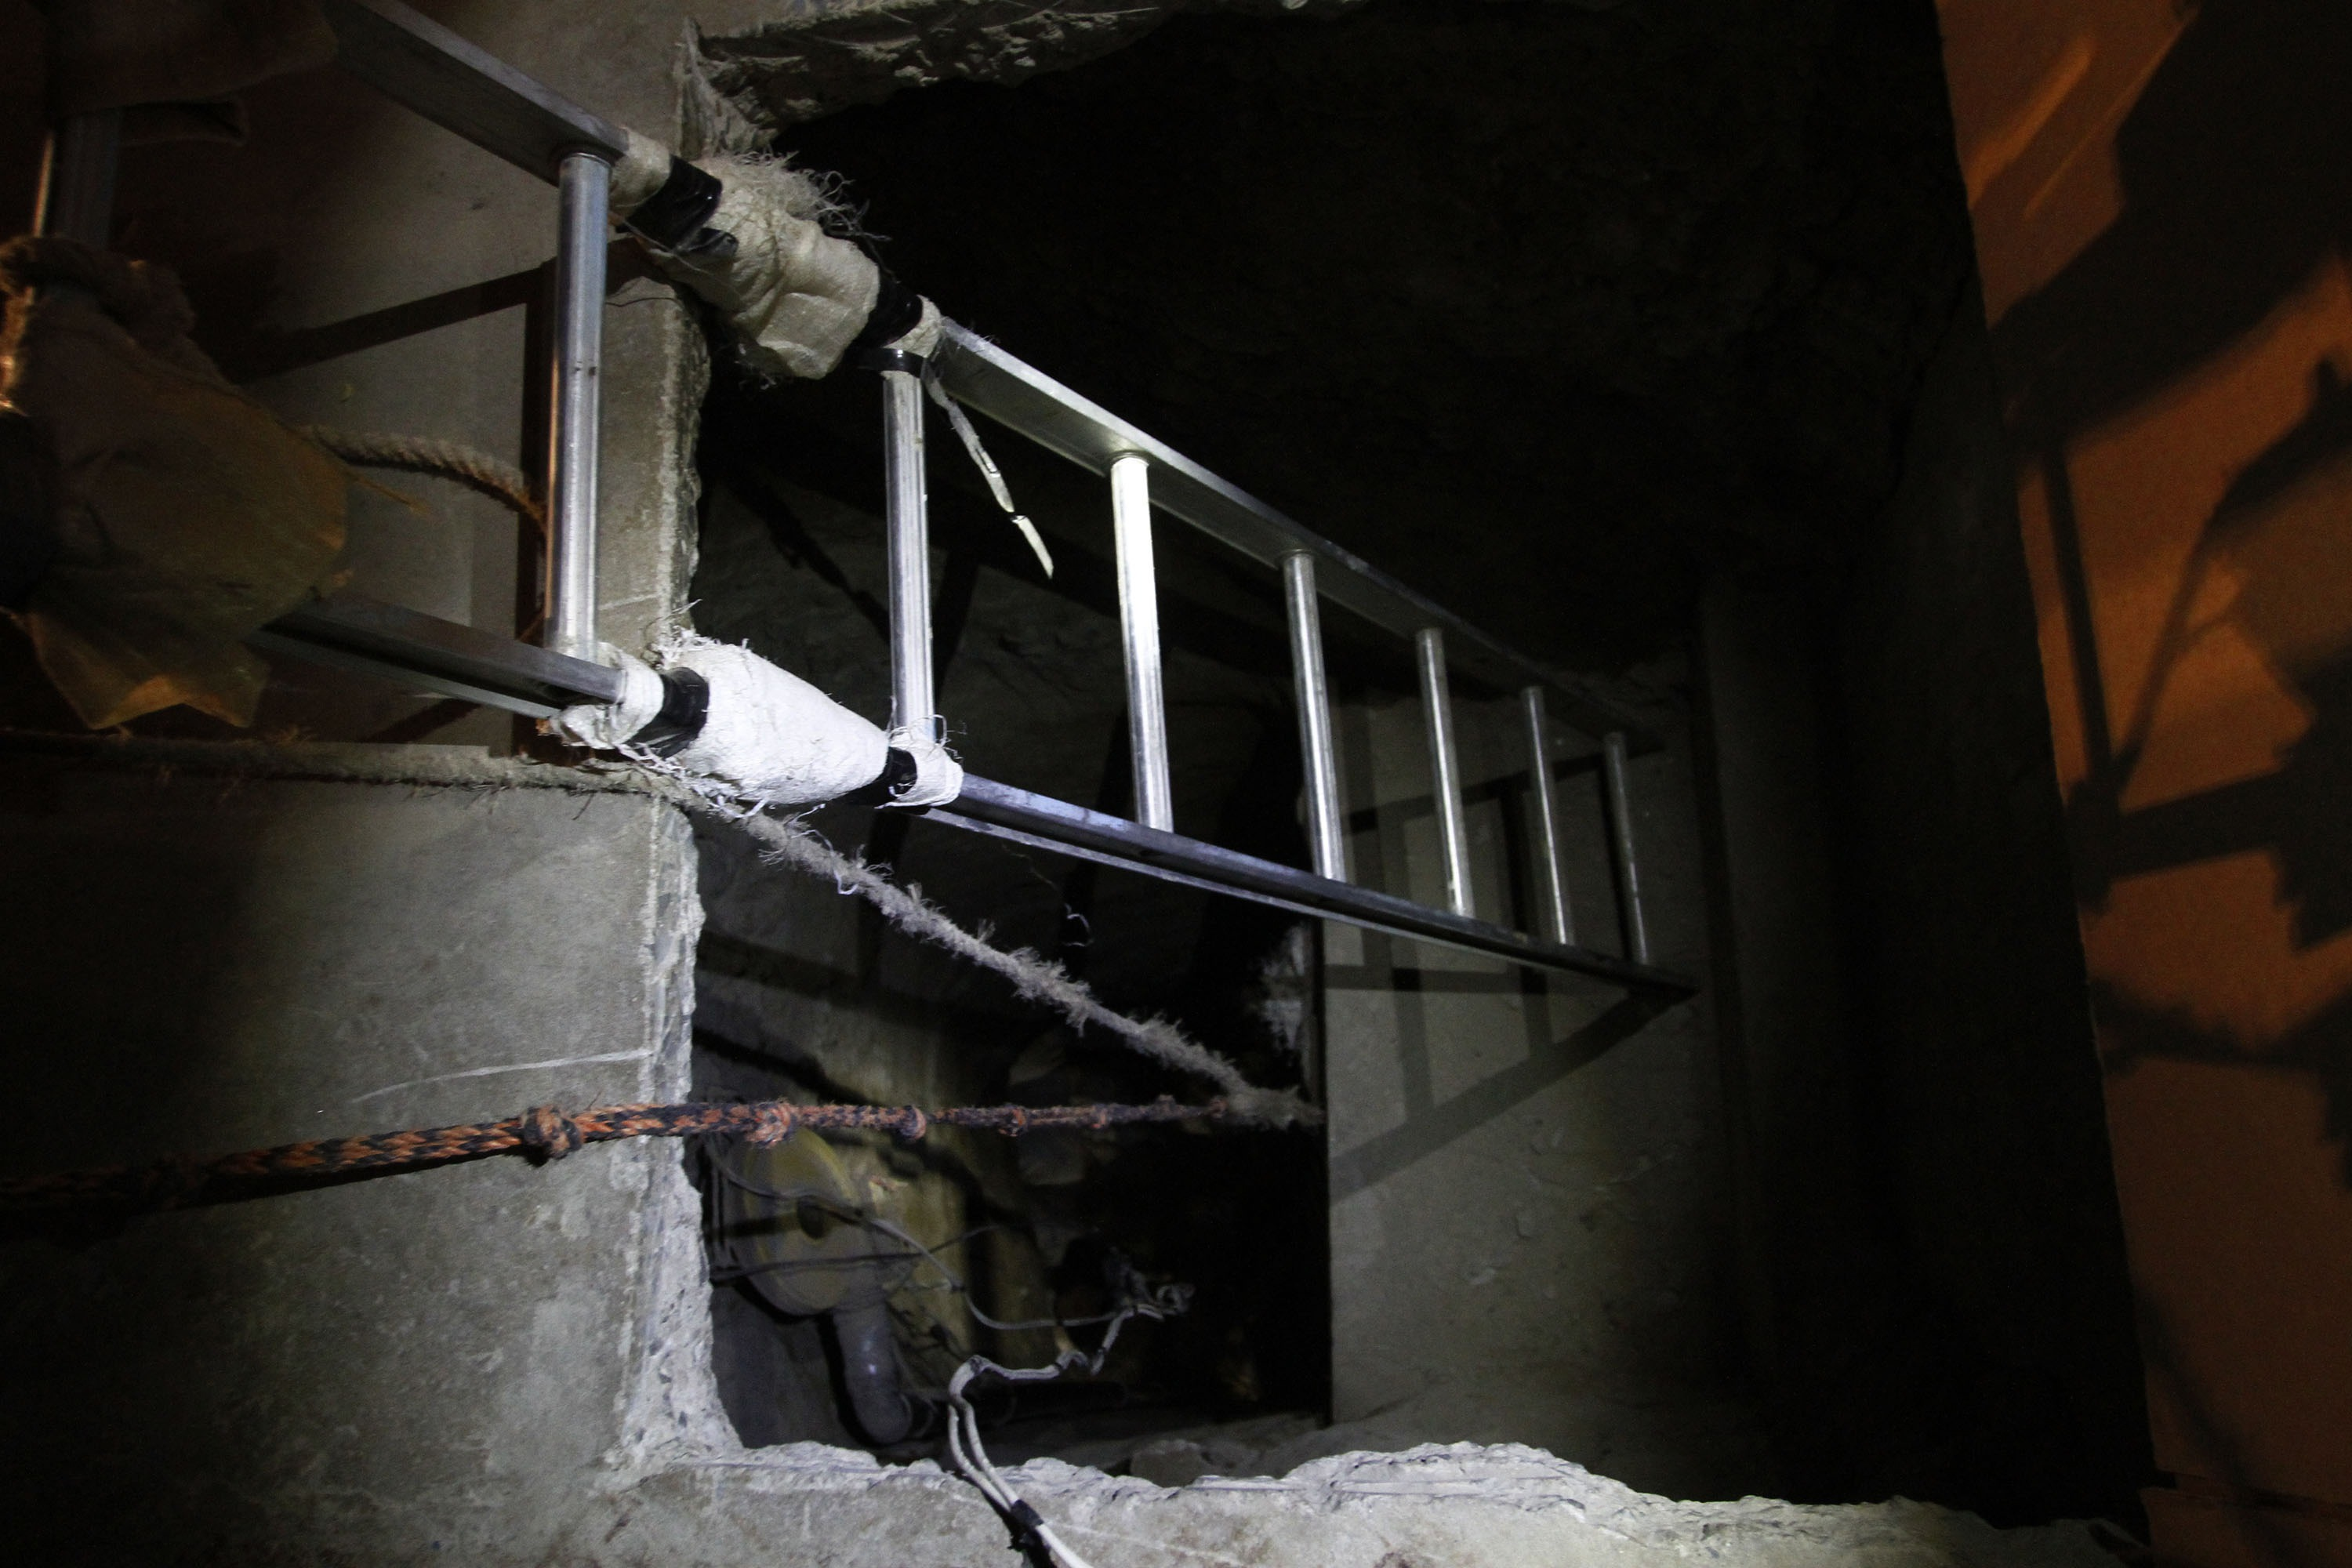 Giant, cross-border smuggling tunnel found under Arizona house